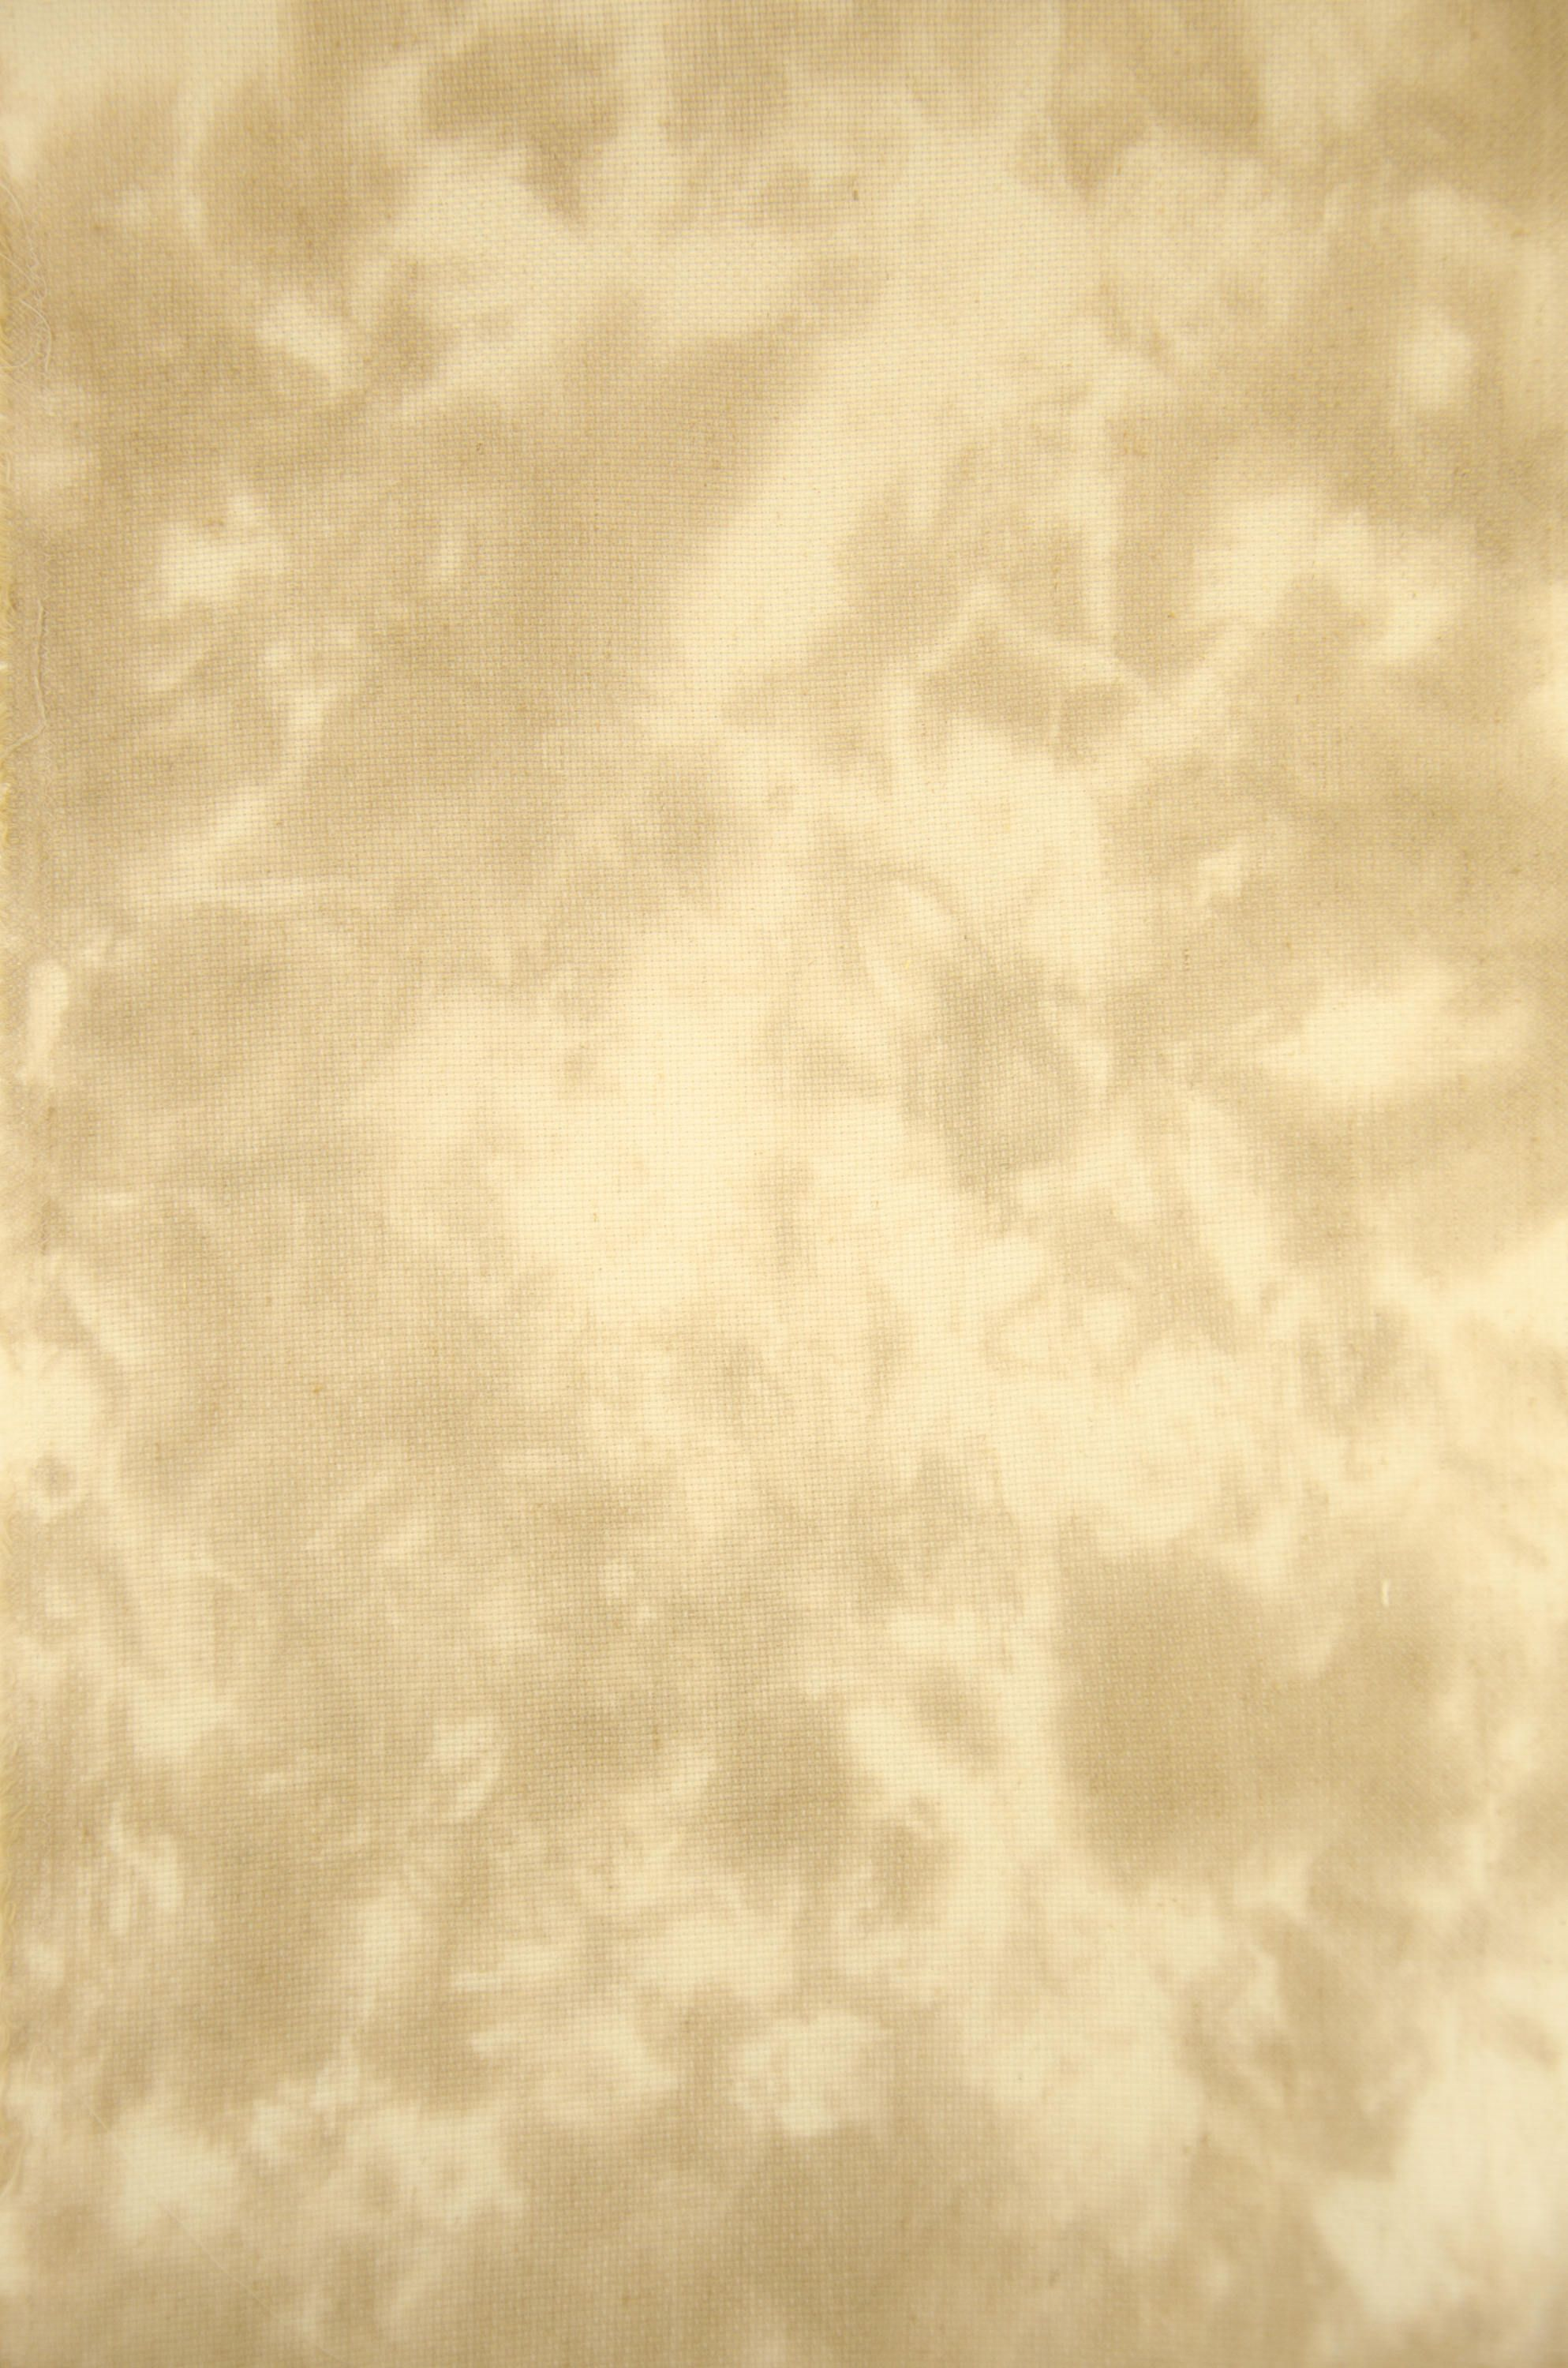 Hand-dyed Cross Stitch Fabric 18 count aida, Item# 35 Tan and Light